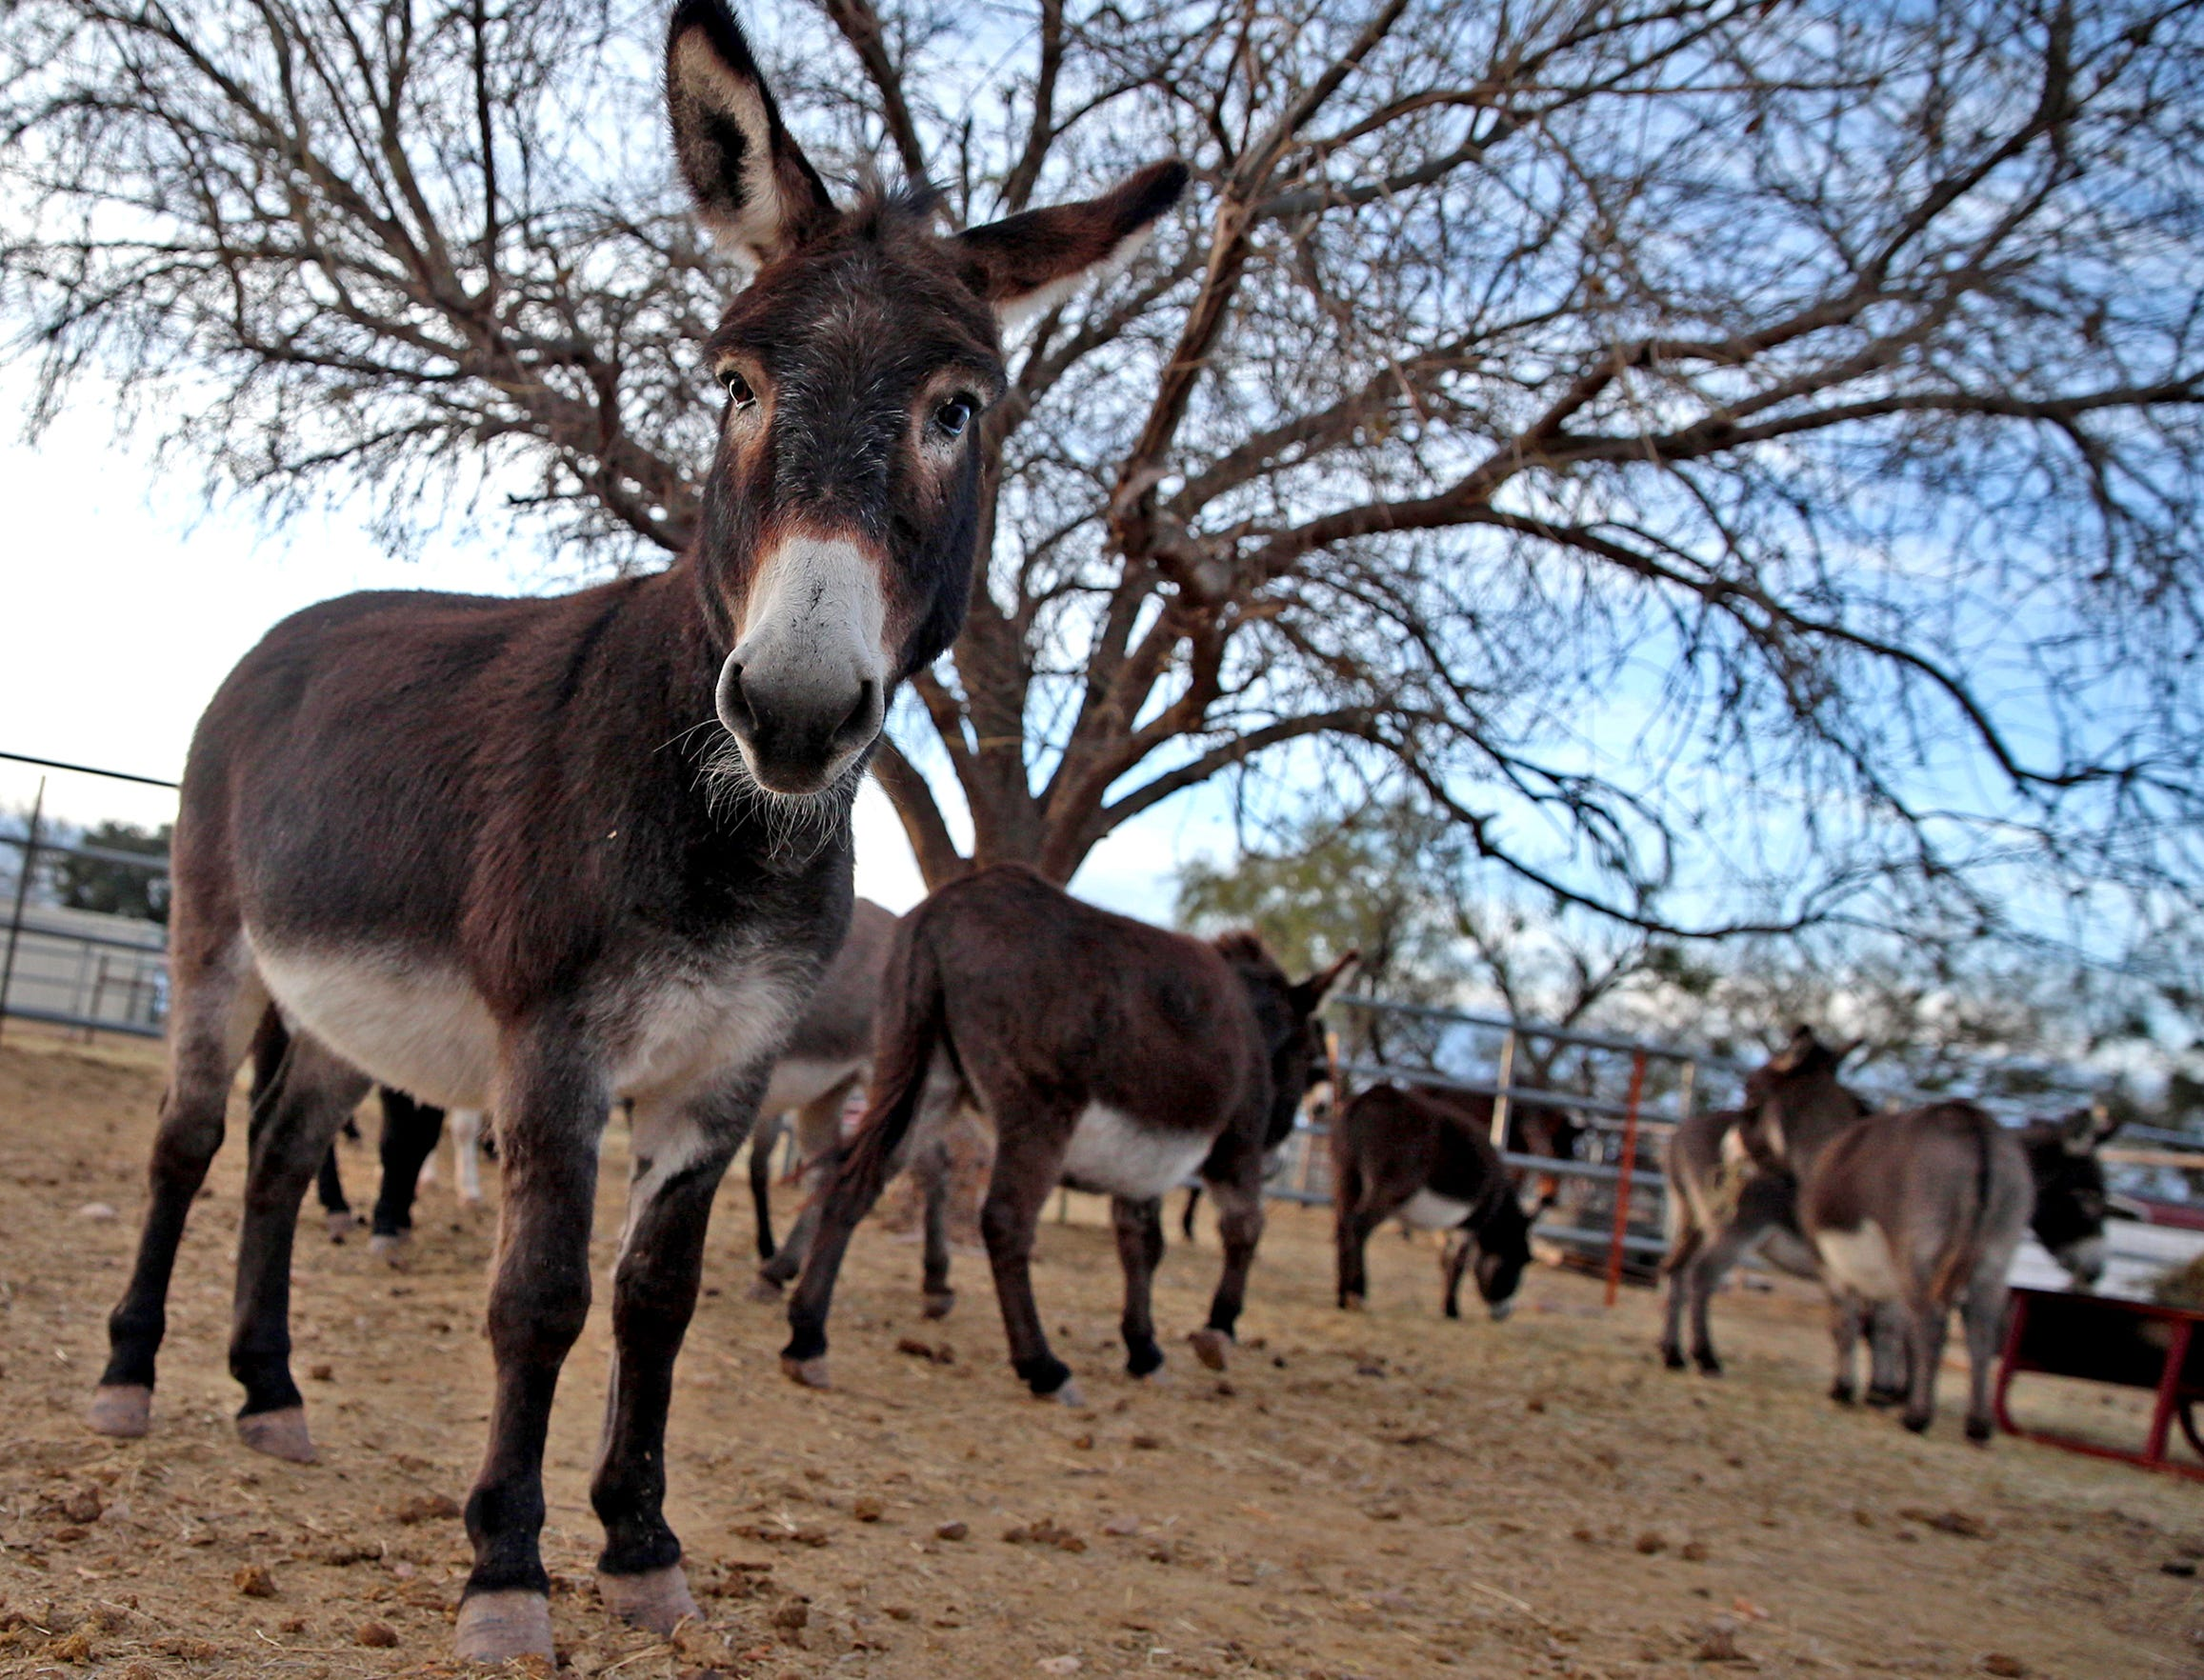 Donkeys gather for feeding time at the Peaceful Valley Donkey Rescue on Tuesday, Nov. 12, 2019.